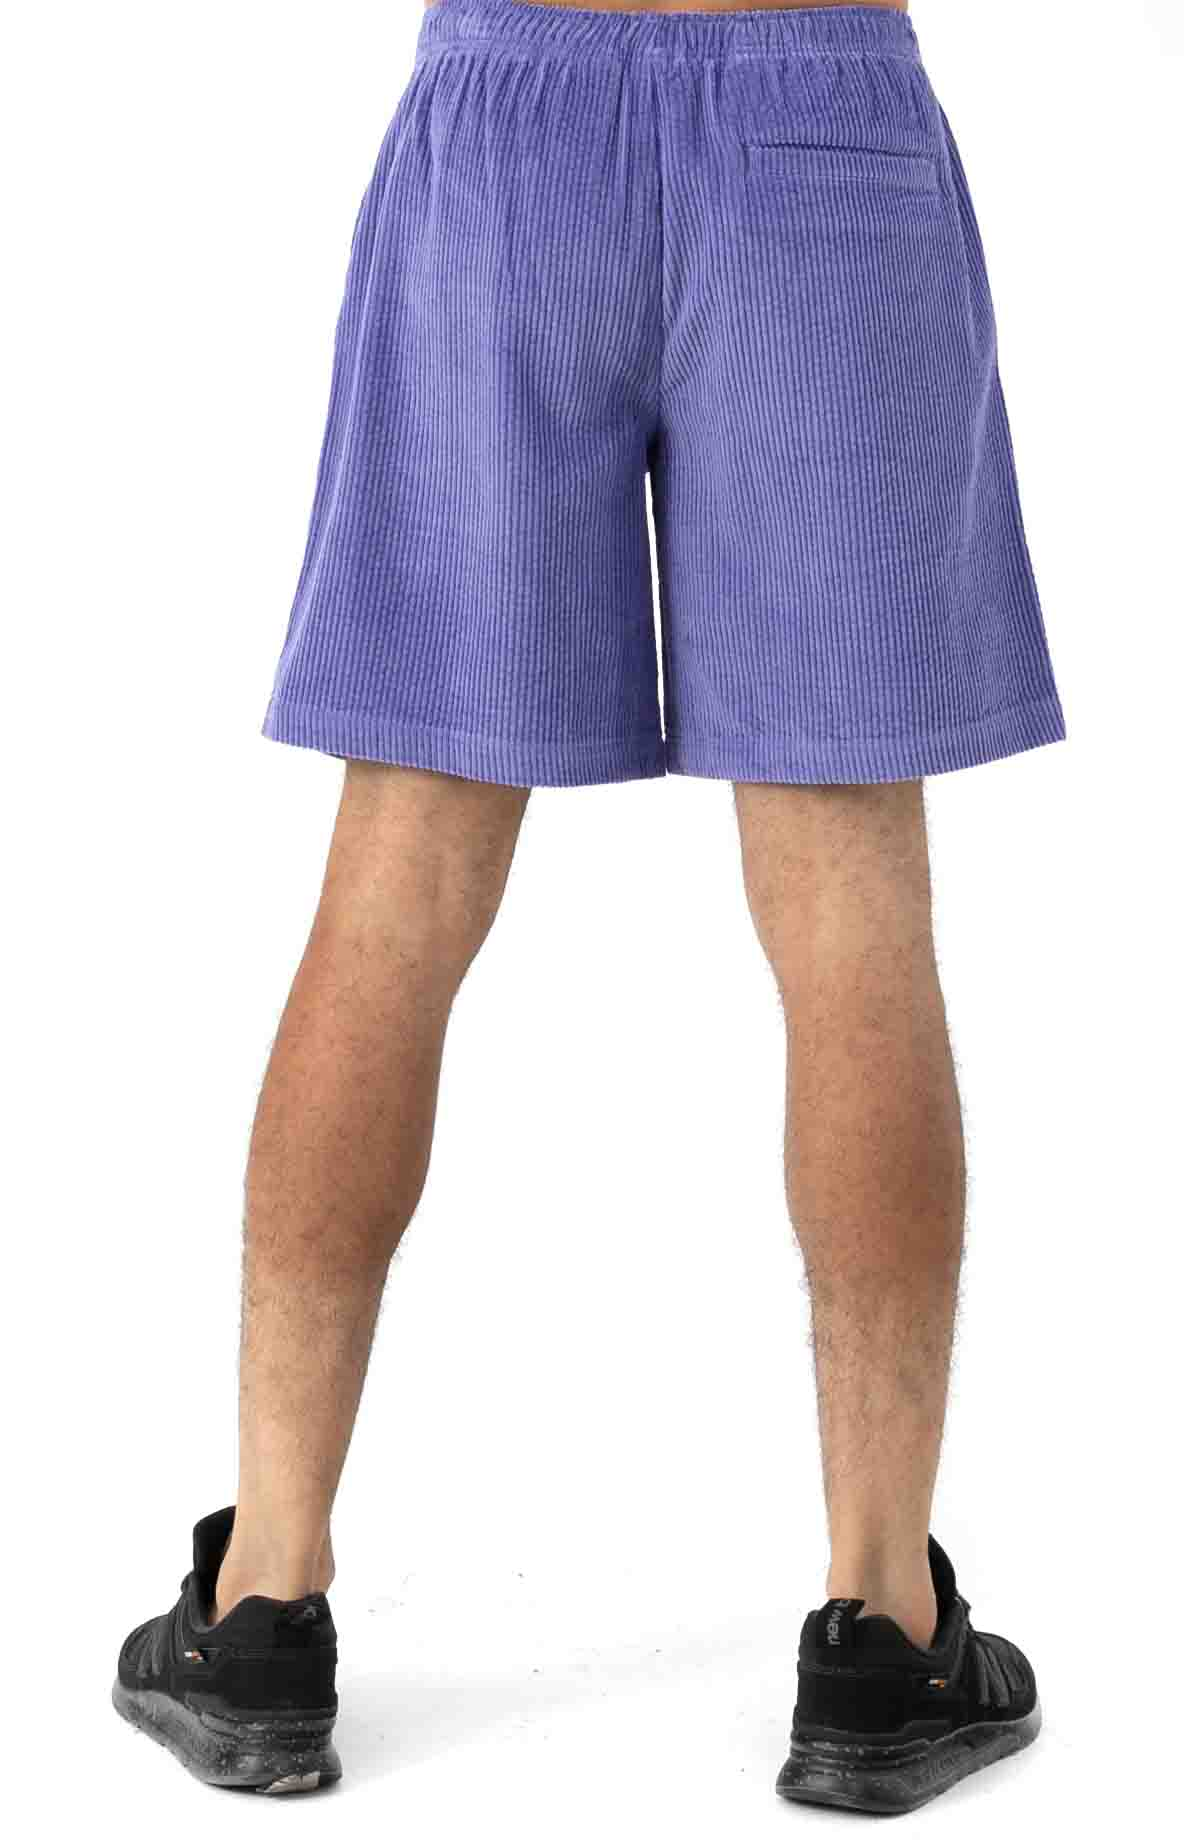 Wide Wale Corduroy Chill Shorts - Periwinkle  3